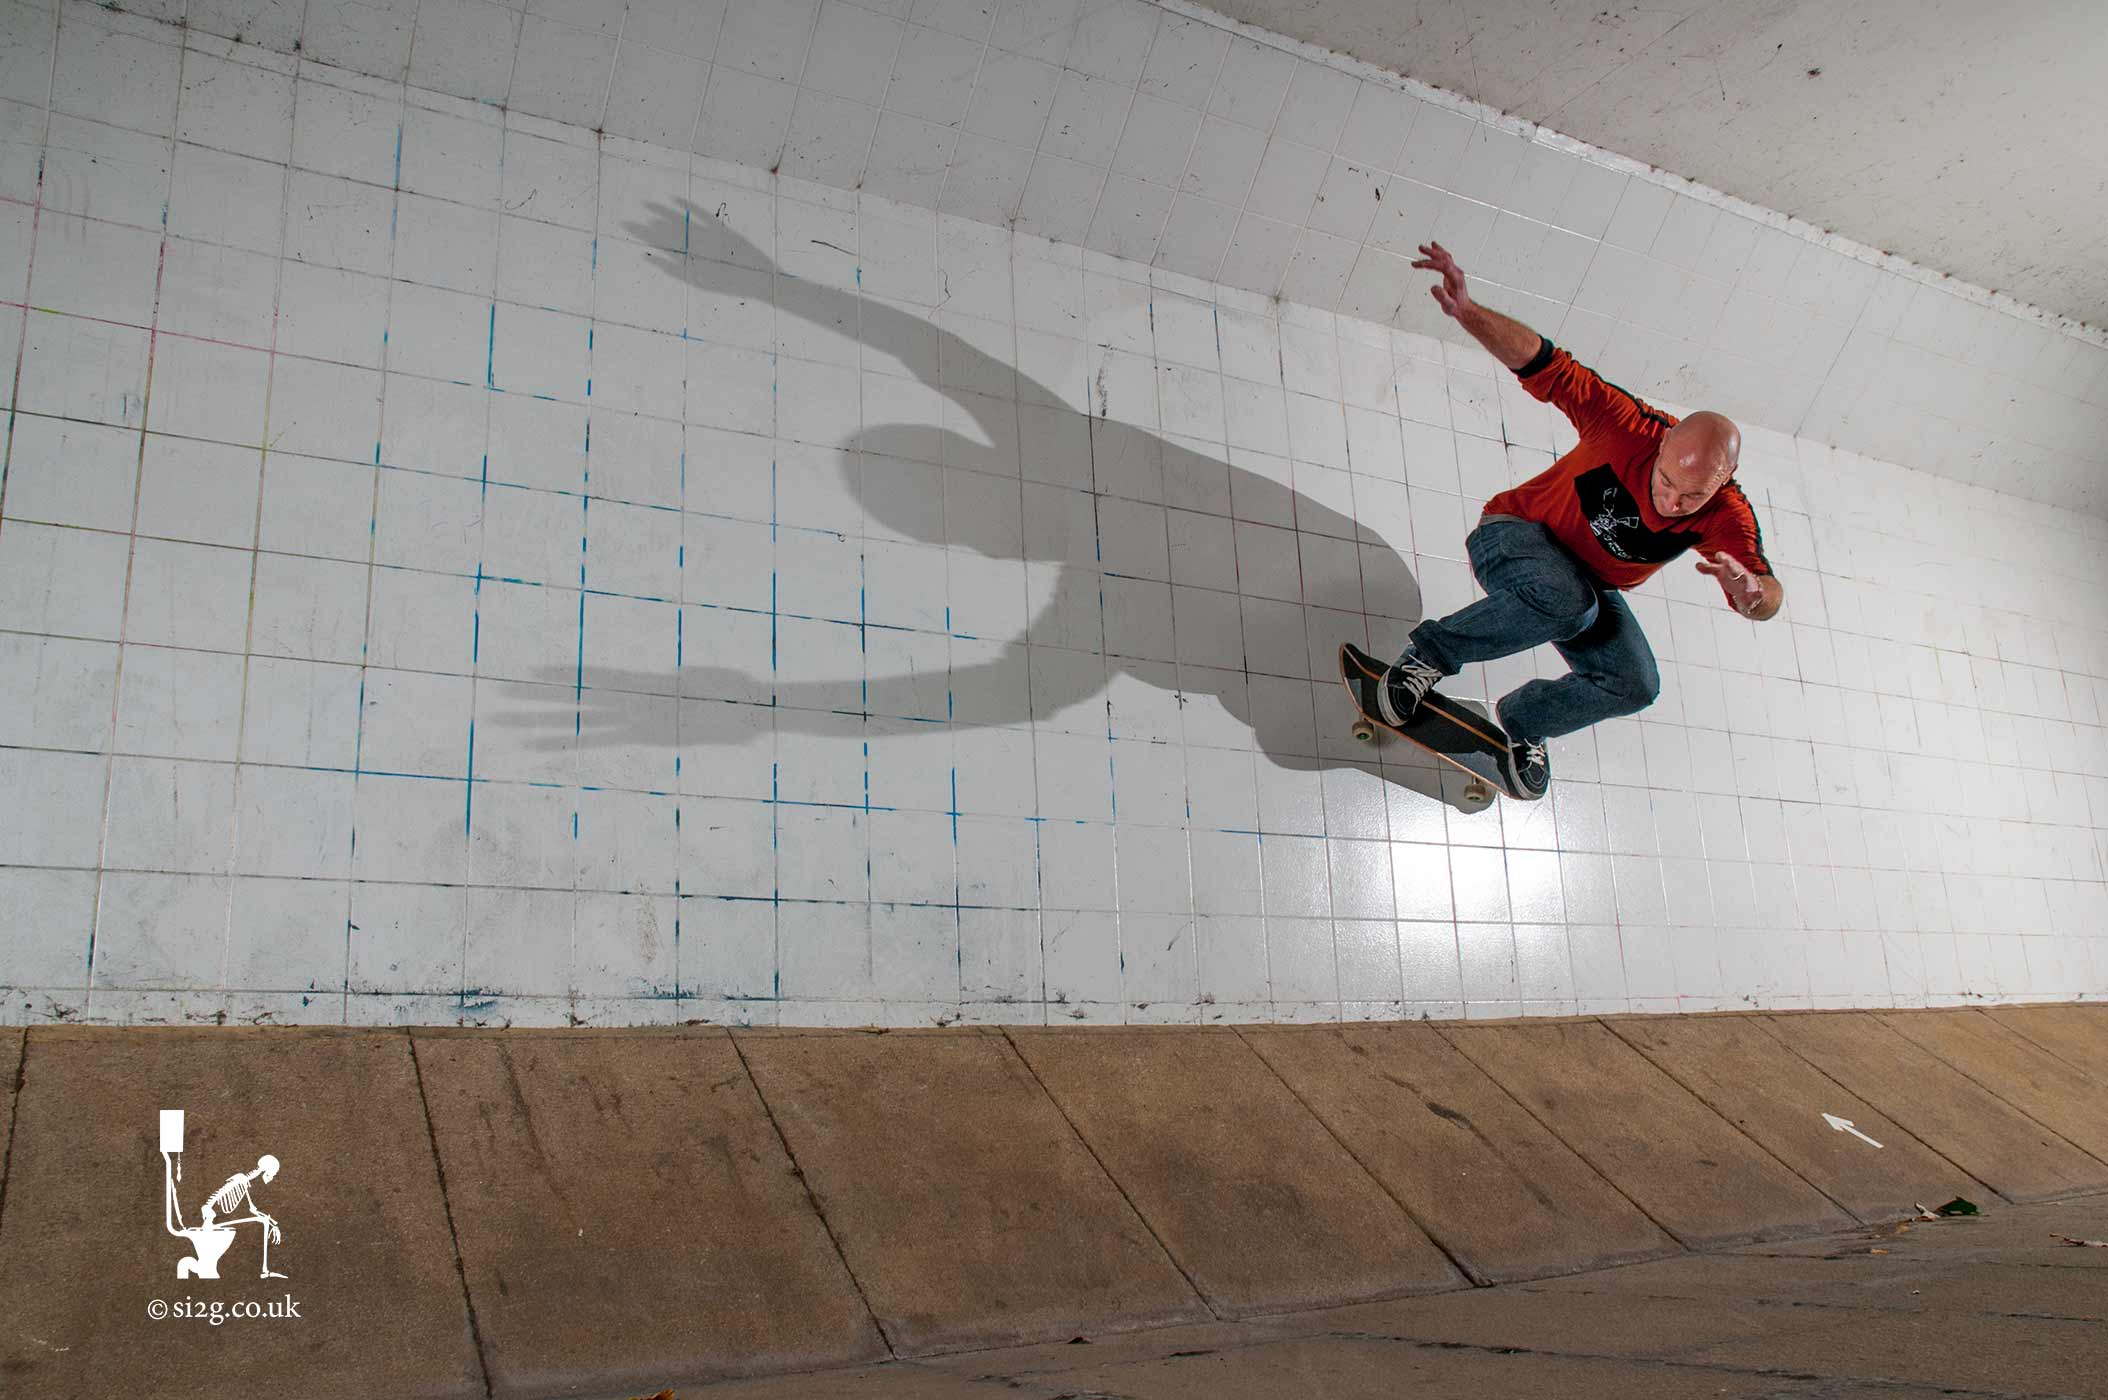 Skateboard Wallride - We set out specifically to capture this image of notorious skateboarder Martin Herrick performing a wallride on his skateboard, with his shadow stretched out across the wall.  In between busy waves of pedestrians using the under-pass Martin rode the wall, time-after-time, while minute adjustments were made to the lighting.